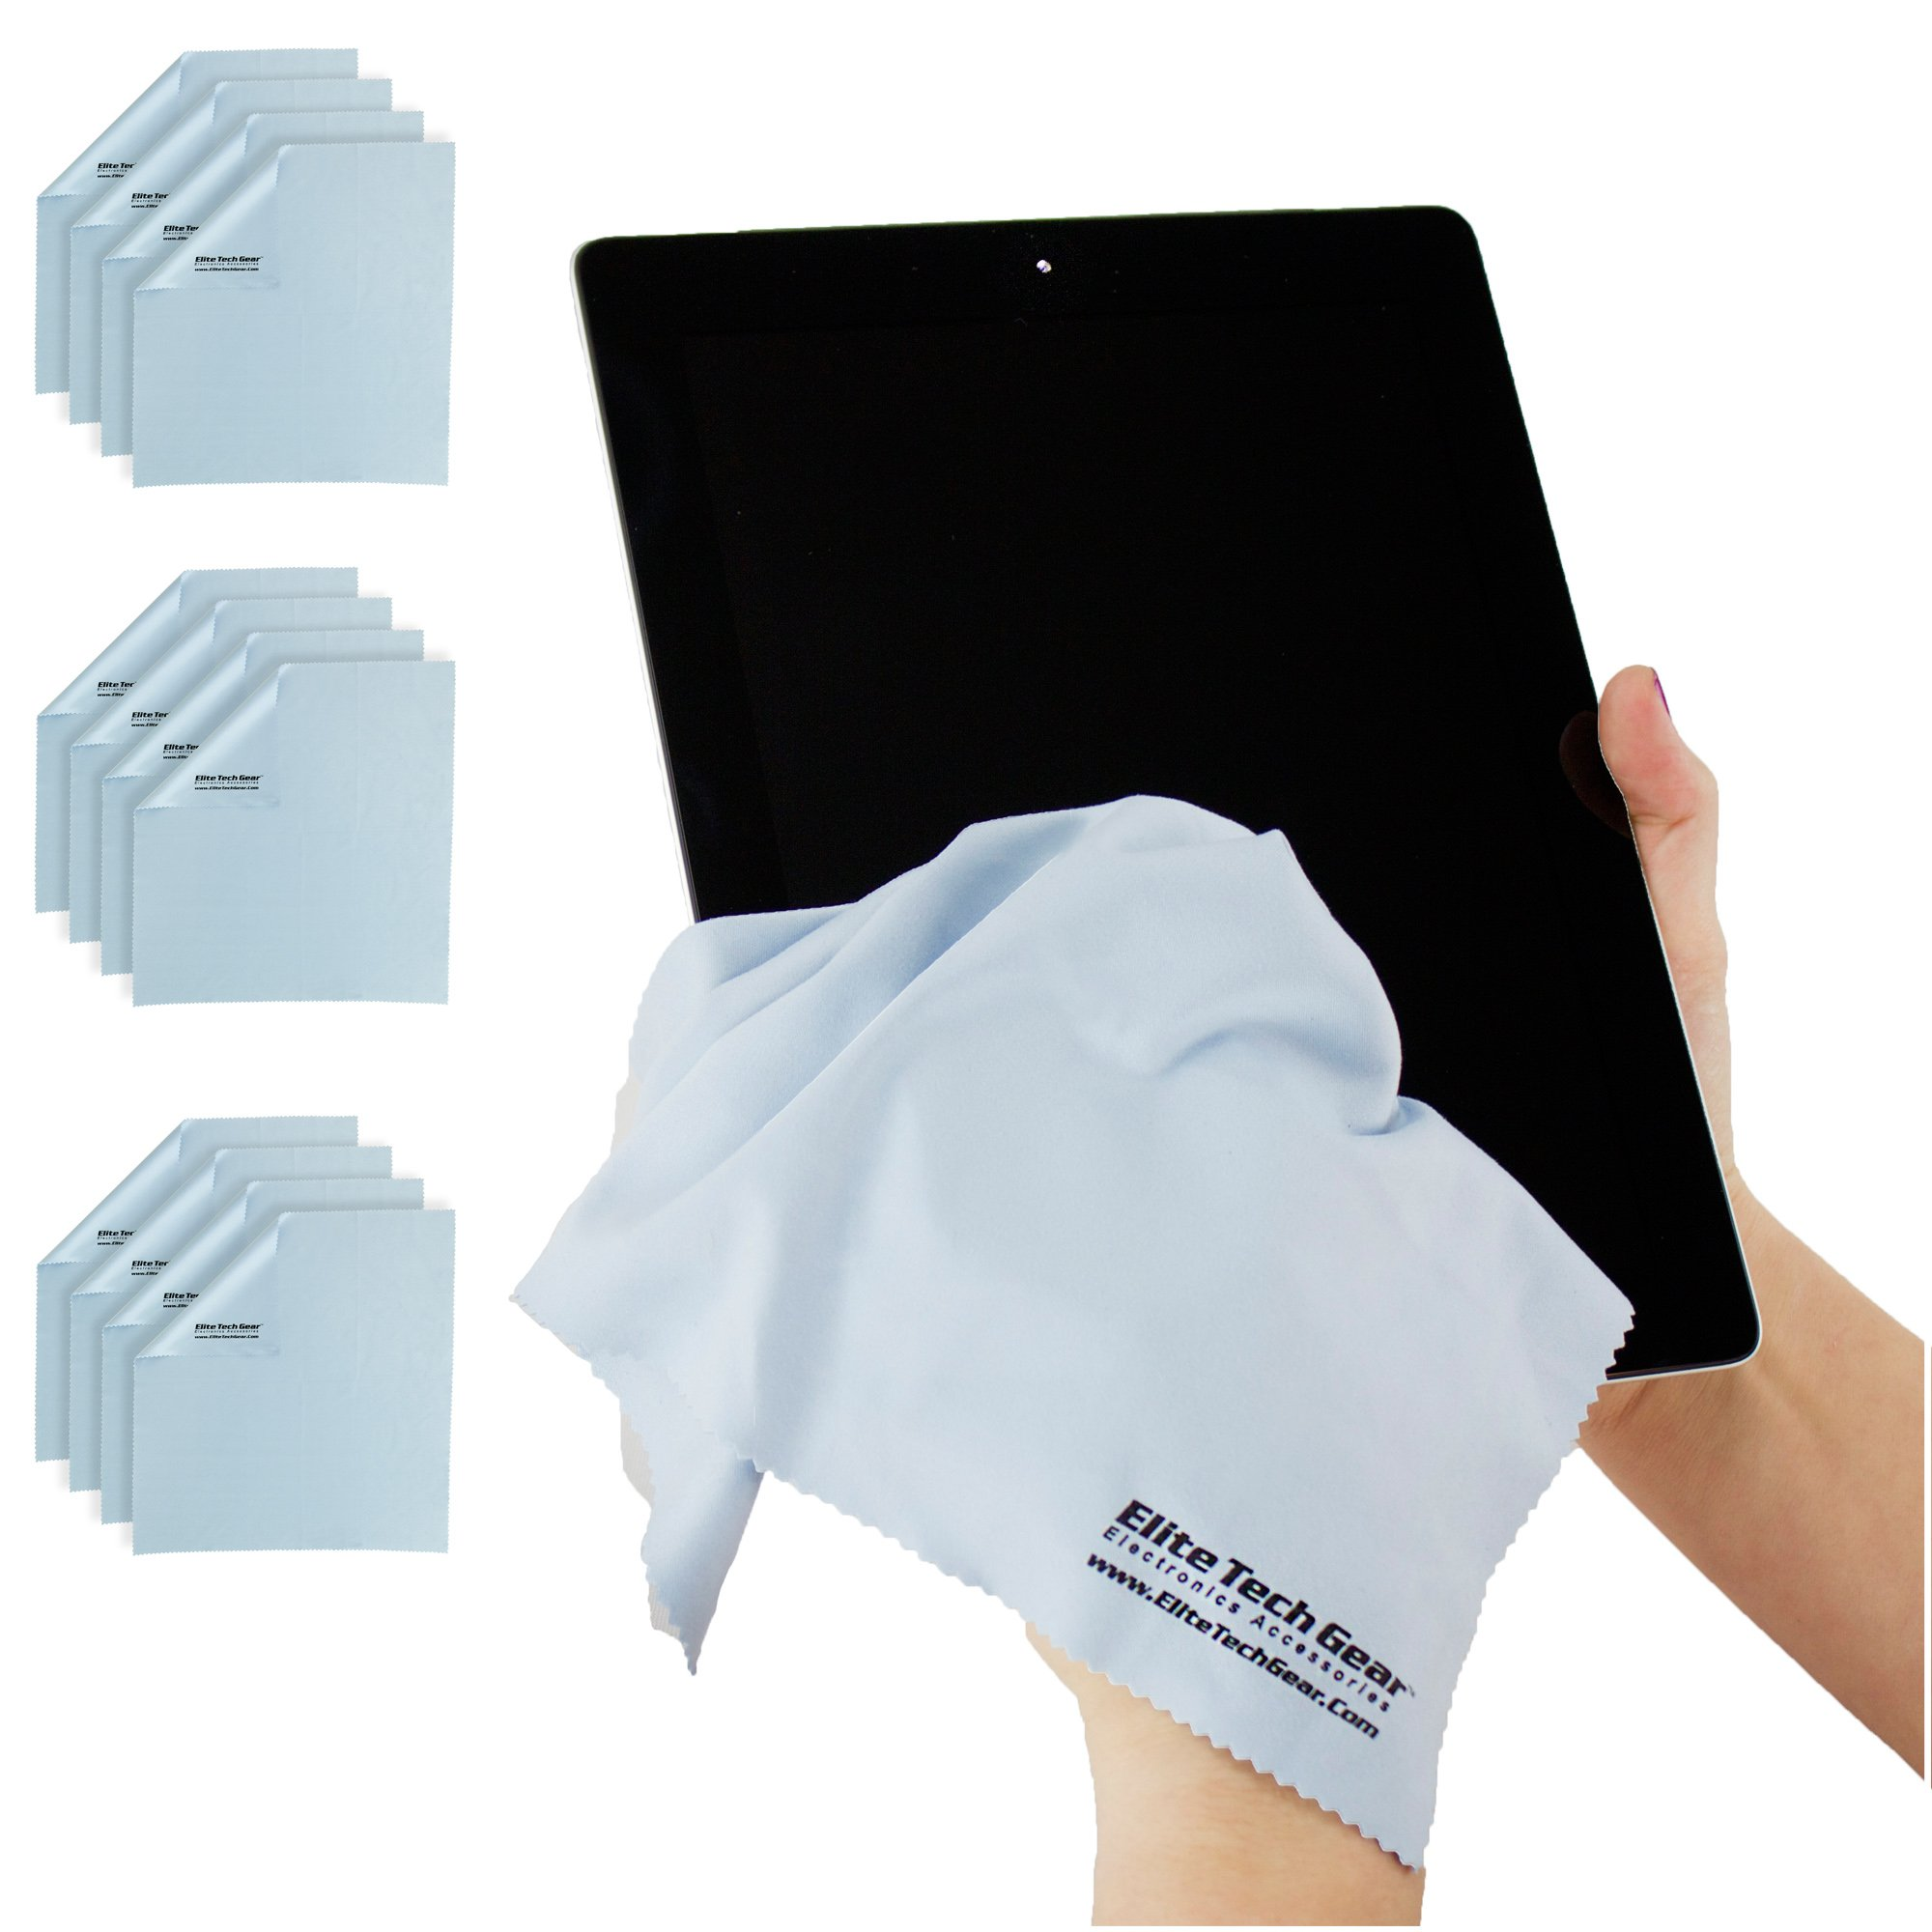 "(12-Pack ''OVERSIZED'') The Most Amazing Microfiber Cleaning Cloths - Perfect For Cleaning All Electronic Device Screens, Eyeglasses, Tablets & Delicate Surfaces (12 Oversized 12''x12"") by Elite Tech Gear"